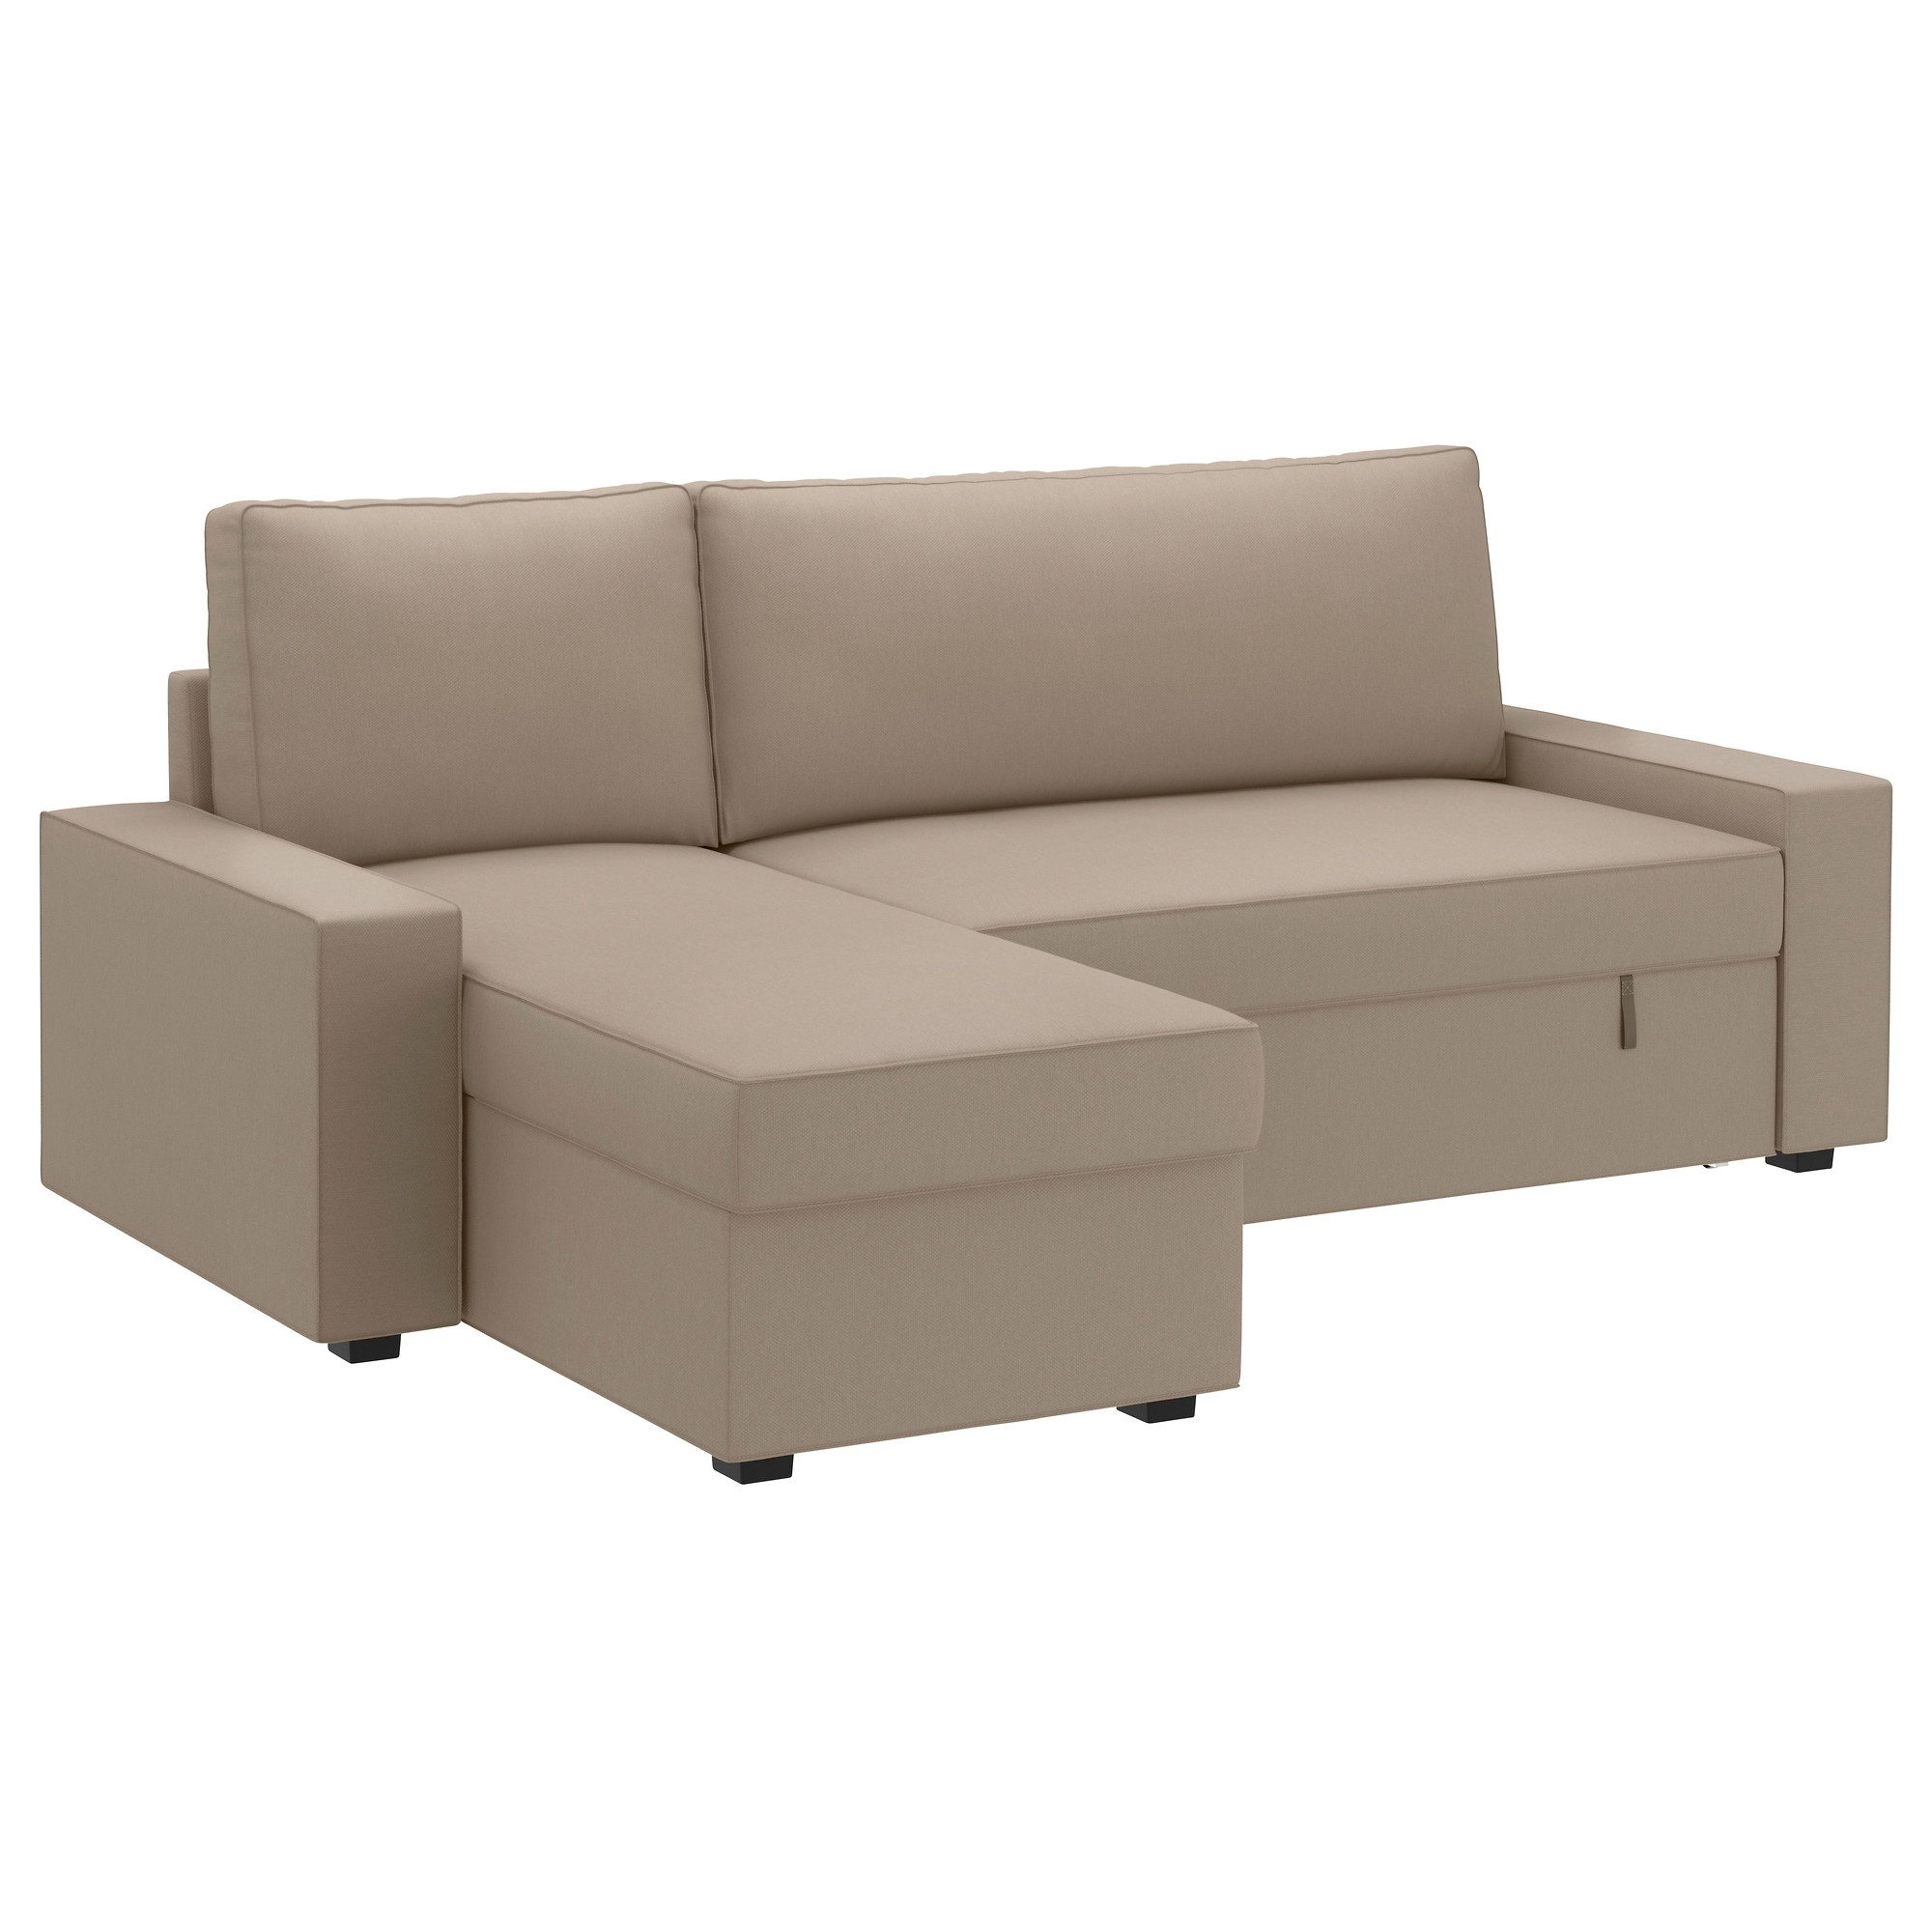 Trendy Chaise Loveseats Regarding Armchair : Small Fold Out Couch Furniture For Tiny Spaces Little (View 5 of 15)